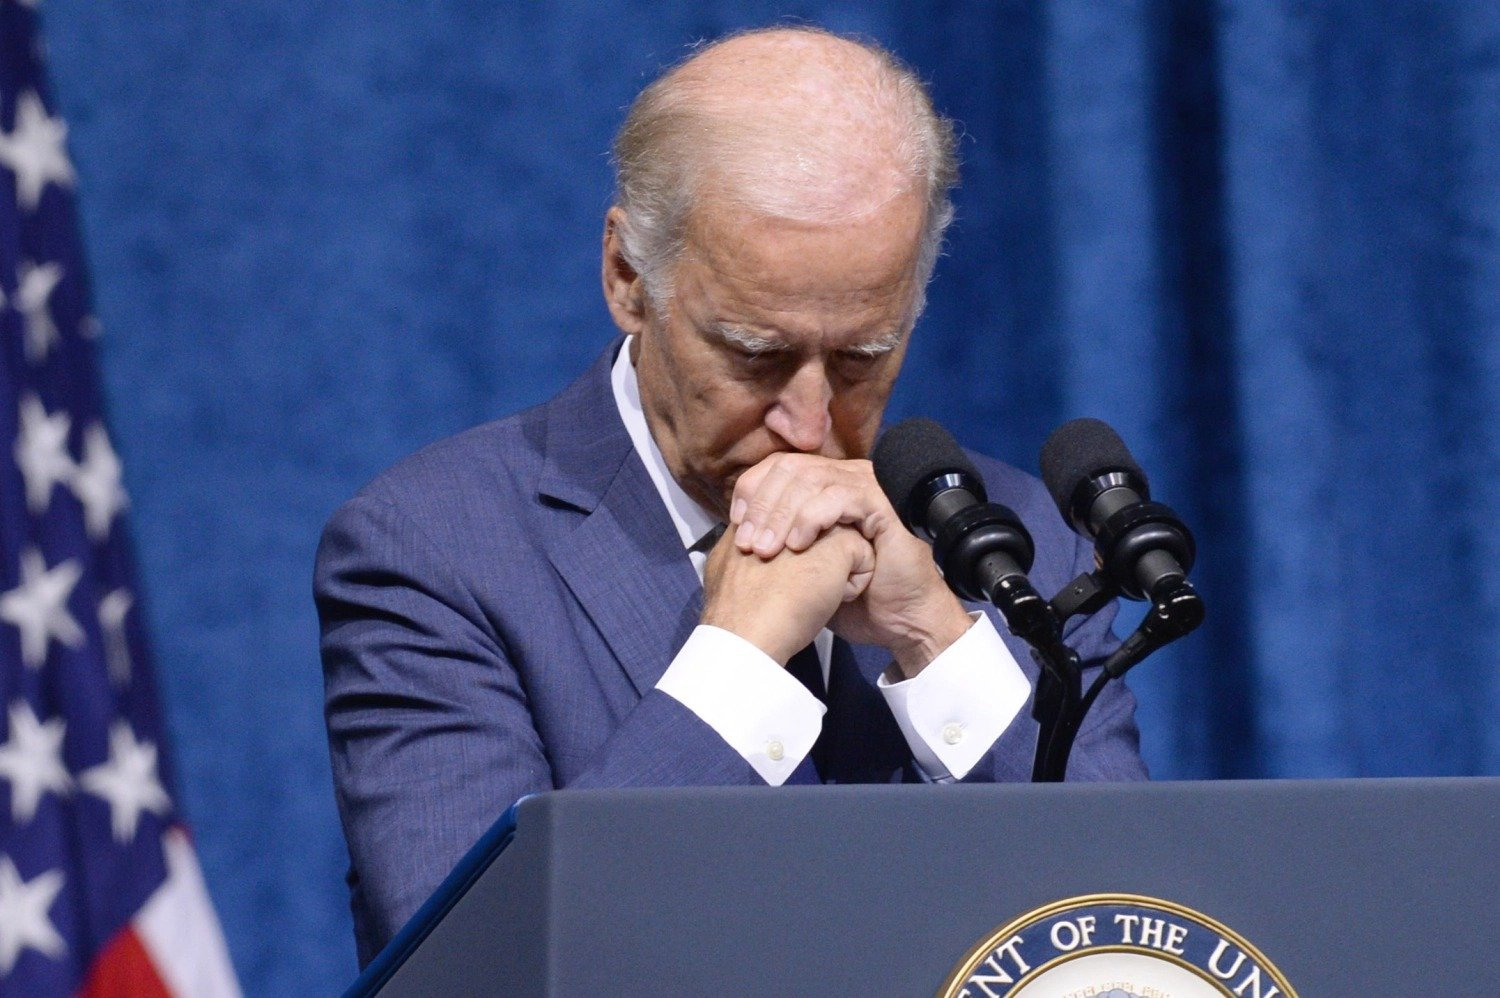 Biden intends to invite Putin and Xi Jinping to climate talks